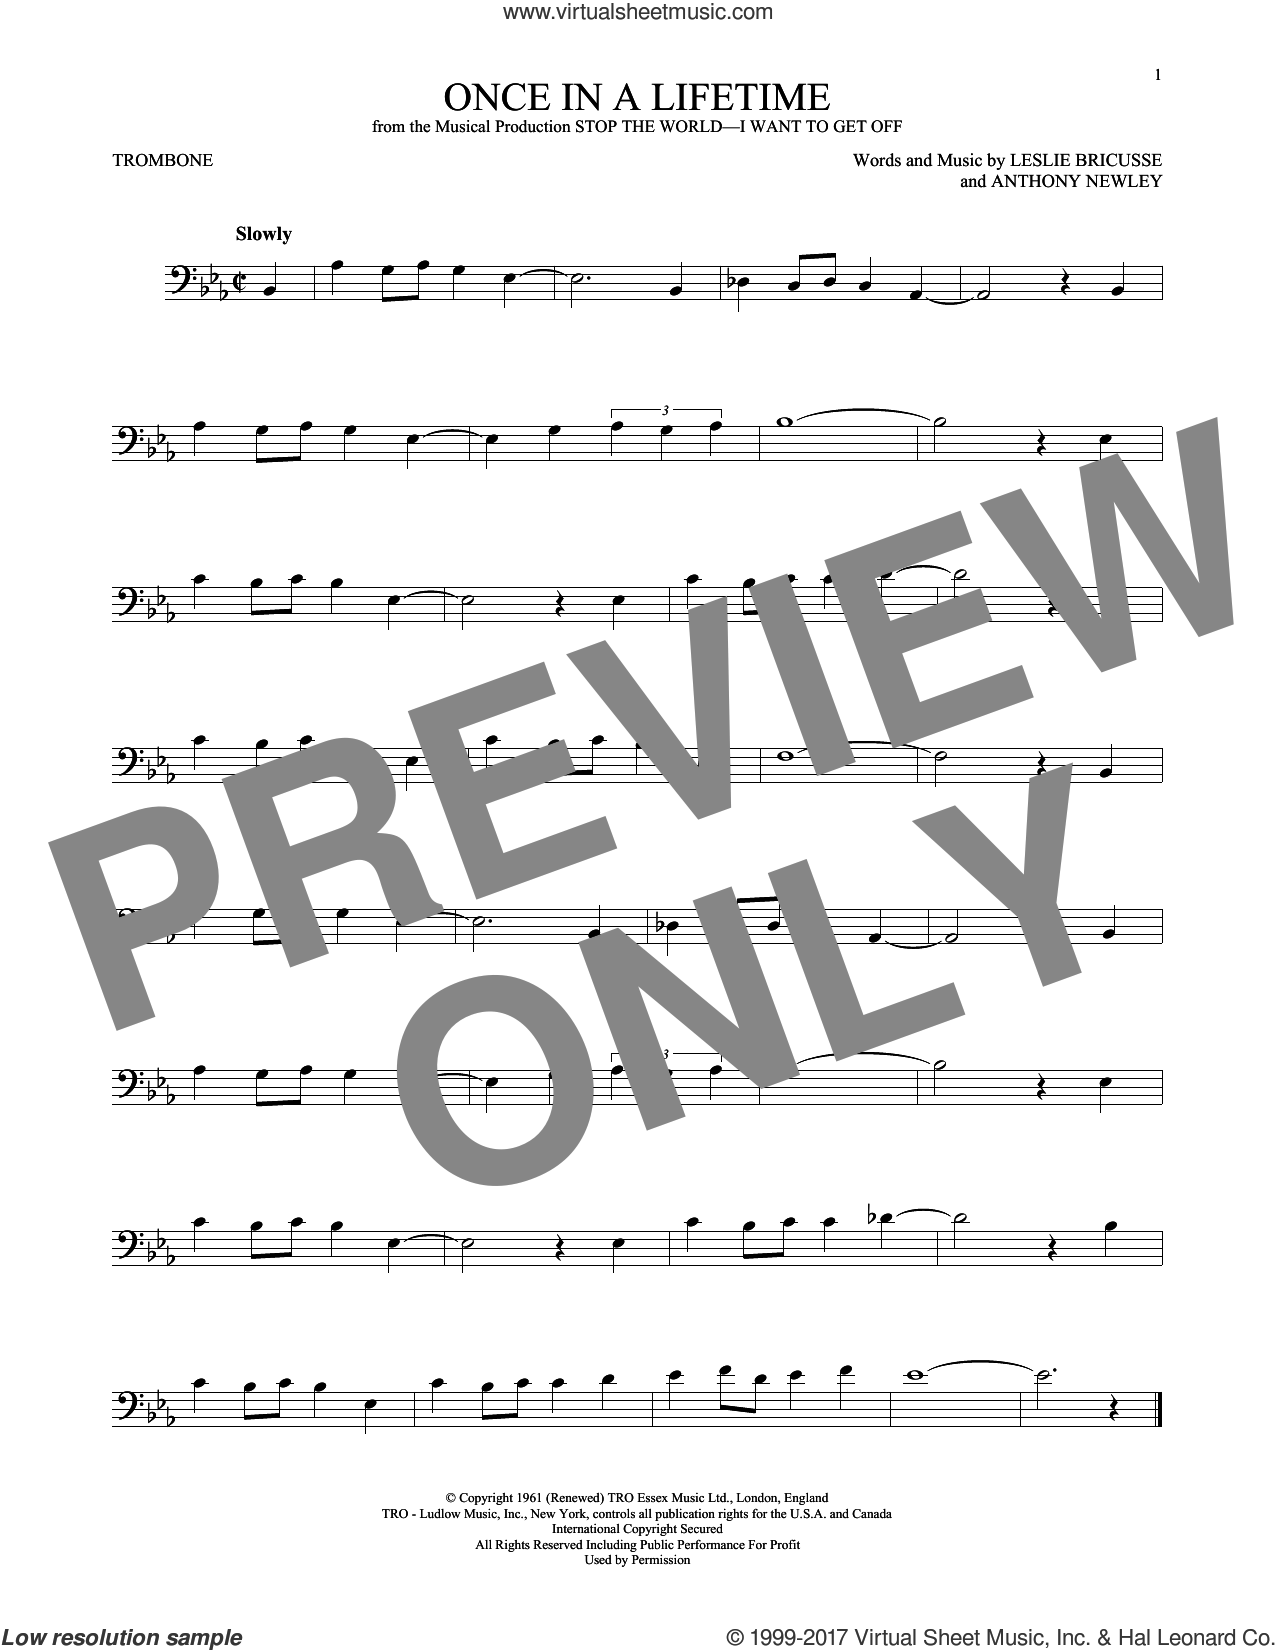 Once In A Lifetime sheet music for trombone solo by Leslie Bricusse and Anthony Newley, intermediate skill level